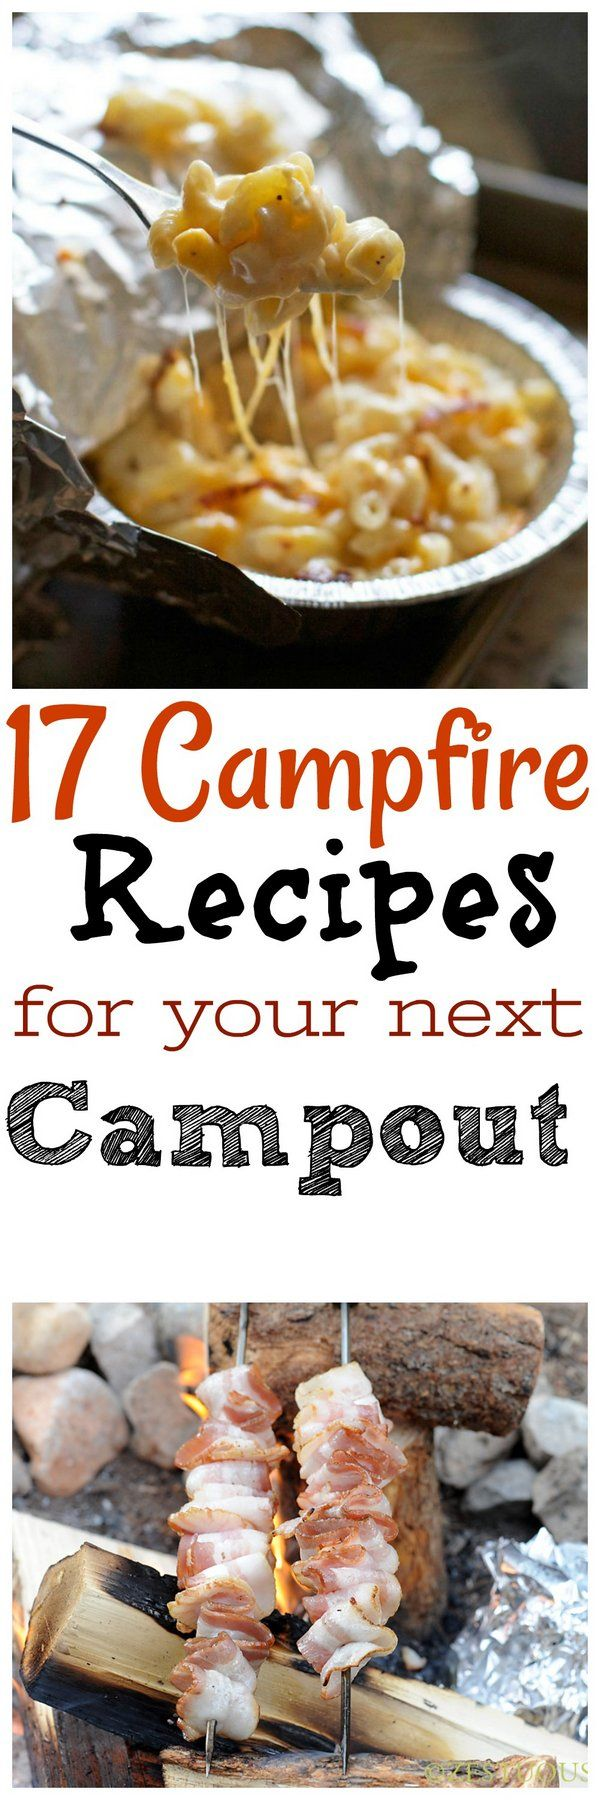 17 Campfire Recipes for Your Next Campout